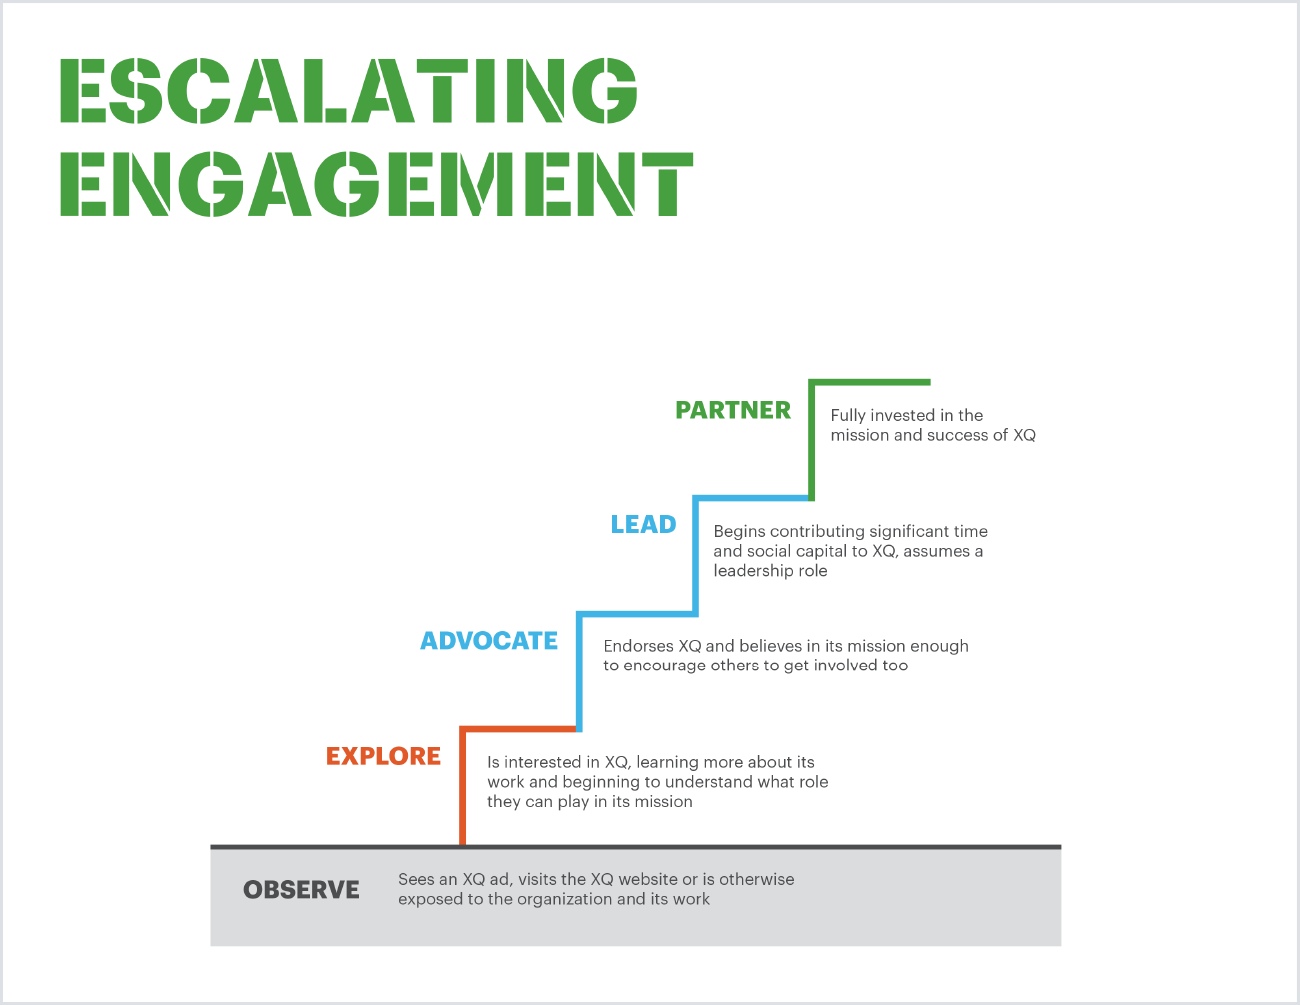 escalating-enagement-framework-for-port.png